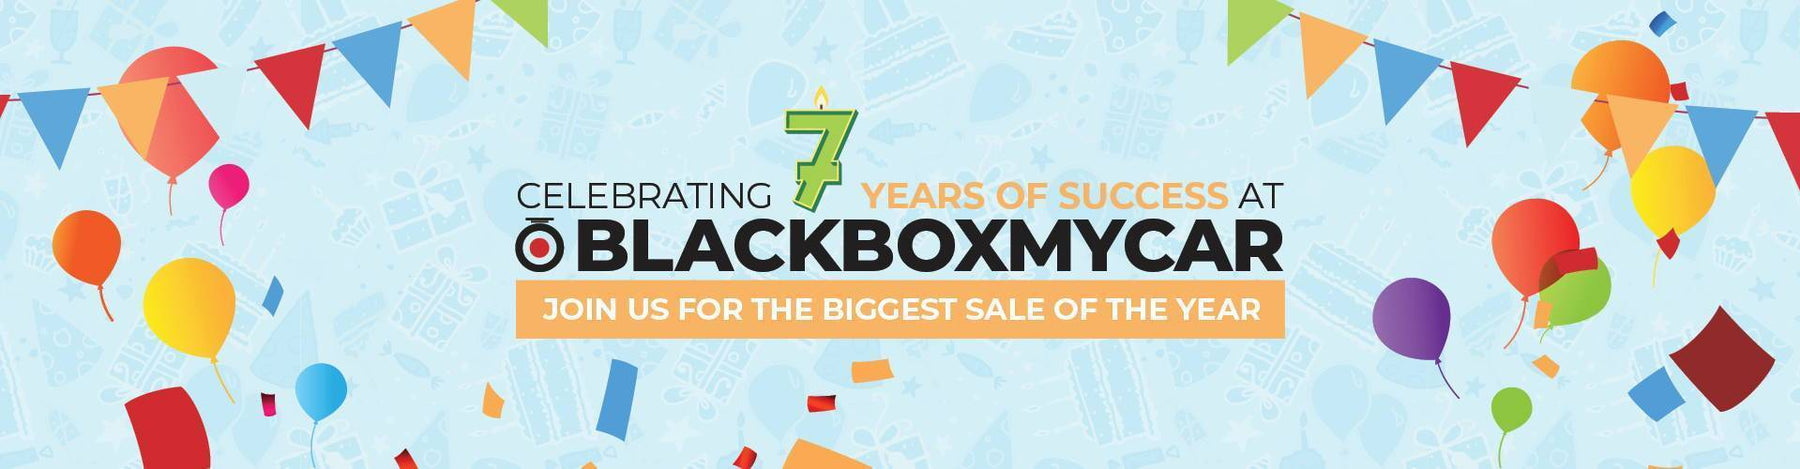 Celebrating Our 7th Year Anniversary at BlackboxMyCar